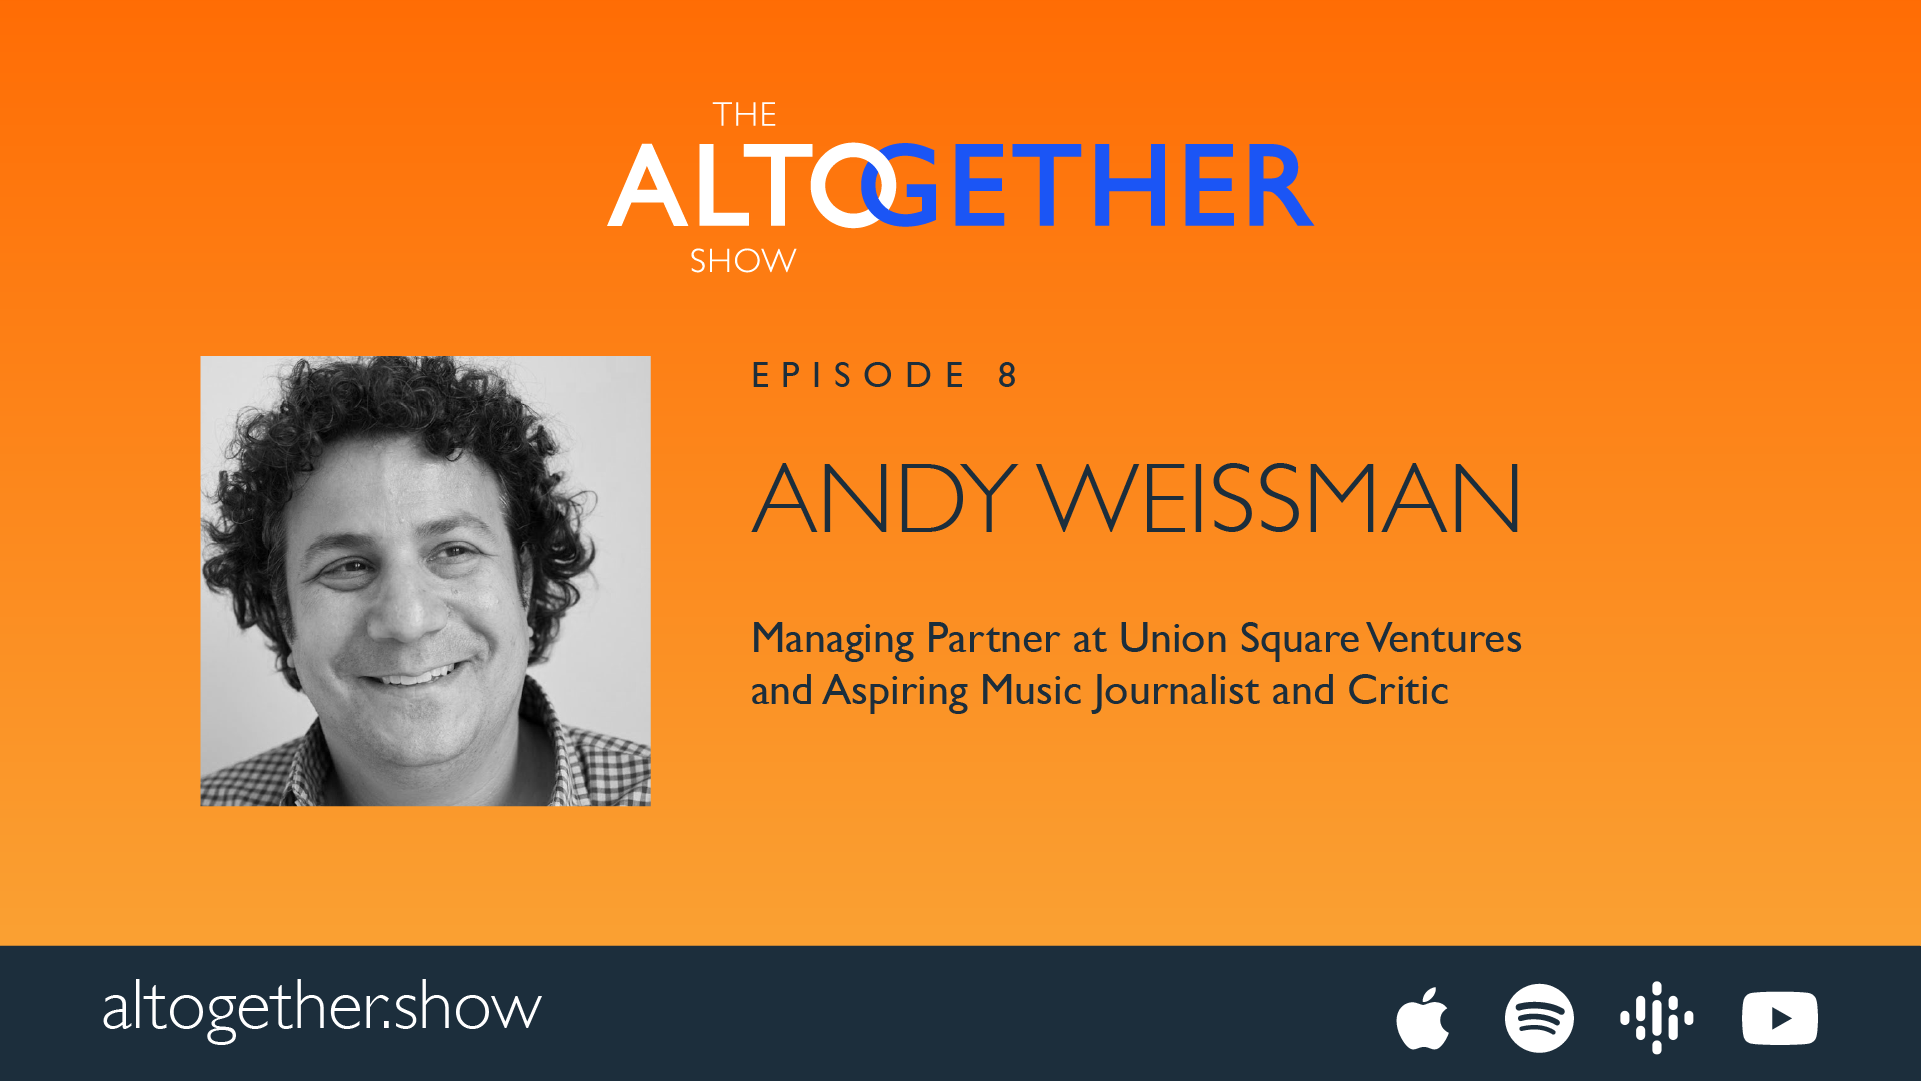 THE ALTOGETHER SHOW - Andy Weissman